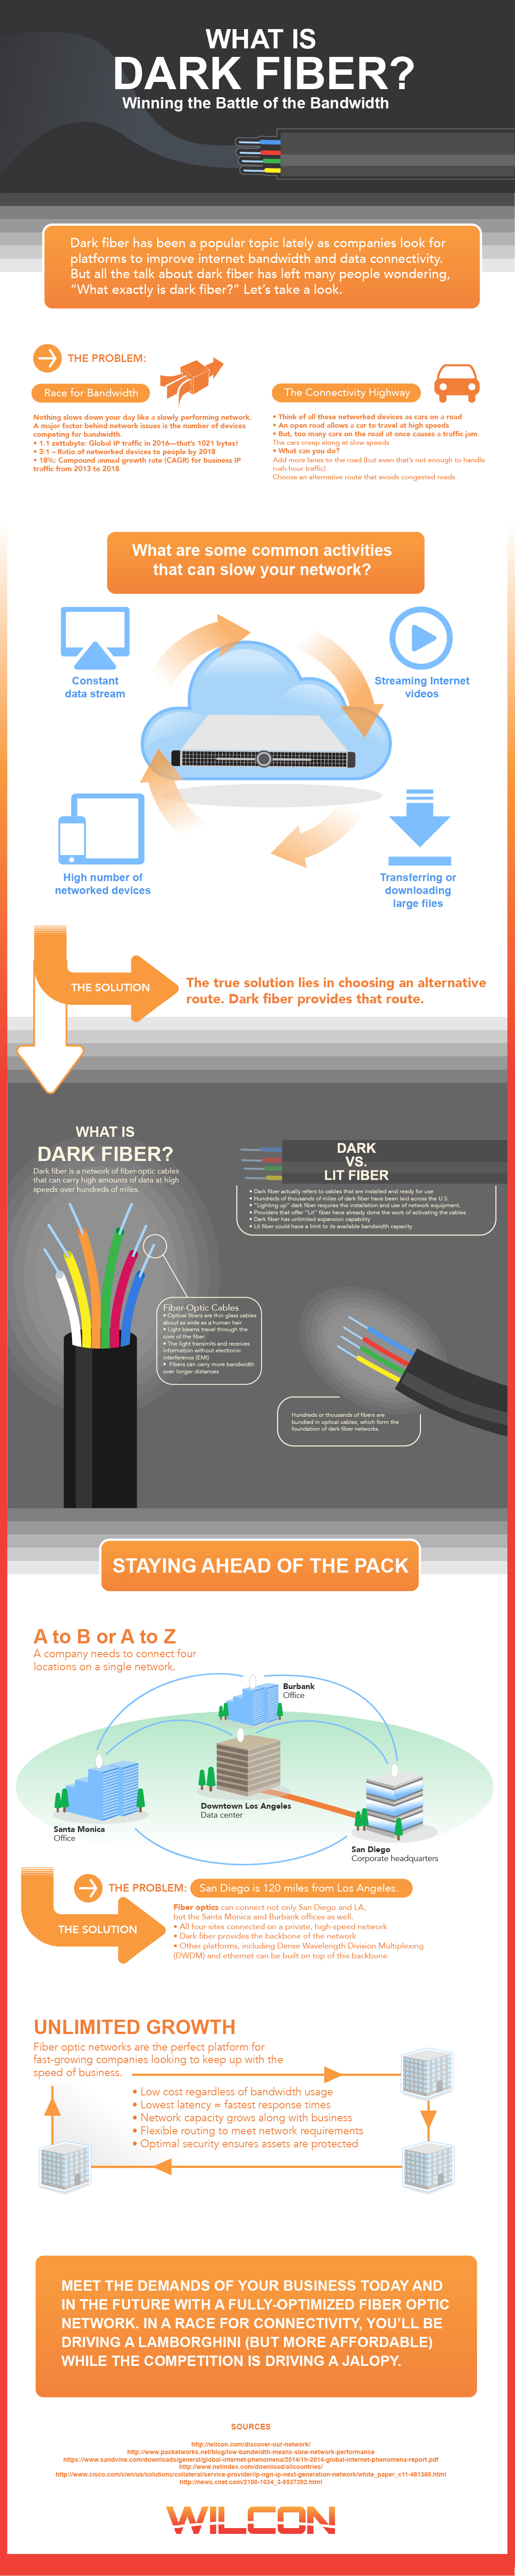 What Is Dark Fiber? Winning the Battle of the Bandwidth